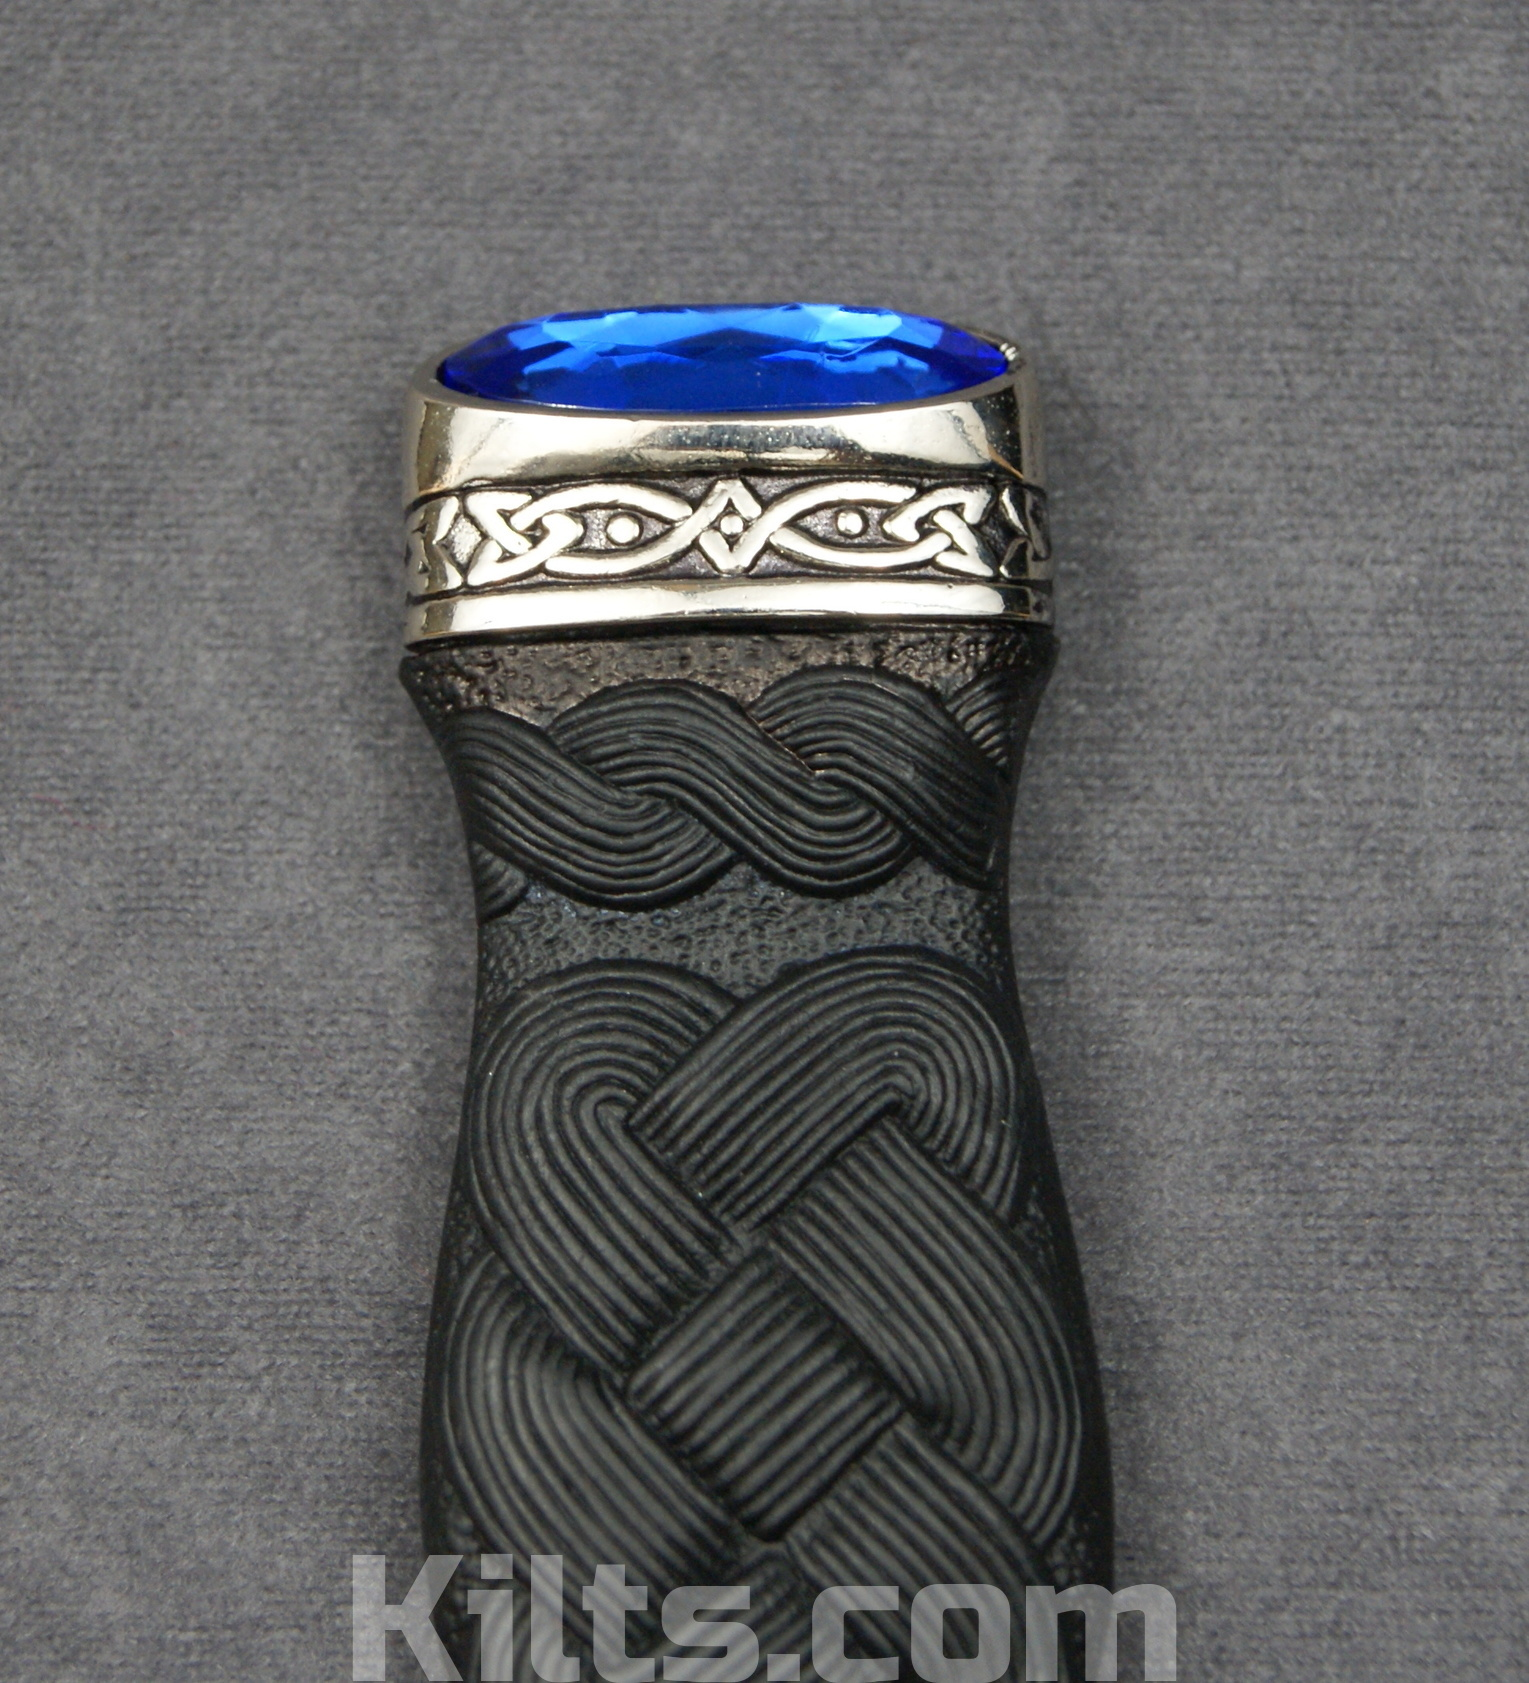 Looking for a Sapphire Sgian Dubh or Sapphire Kilt Knife?